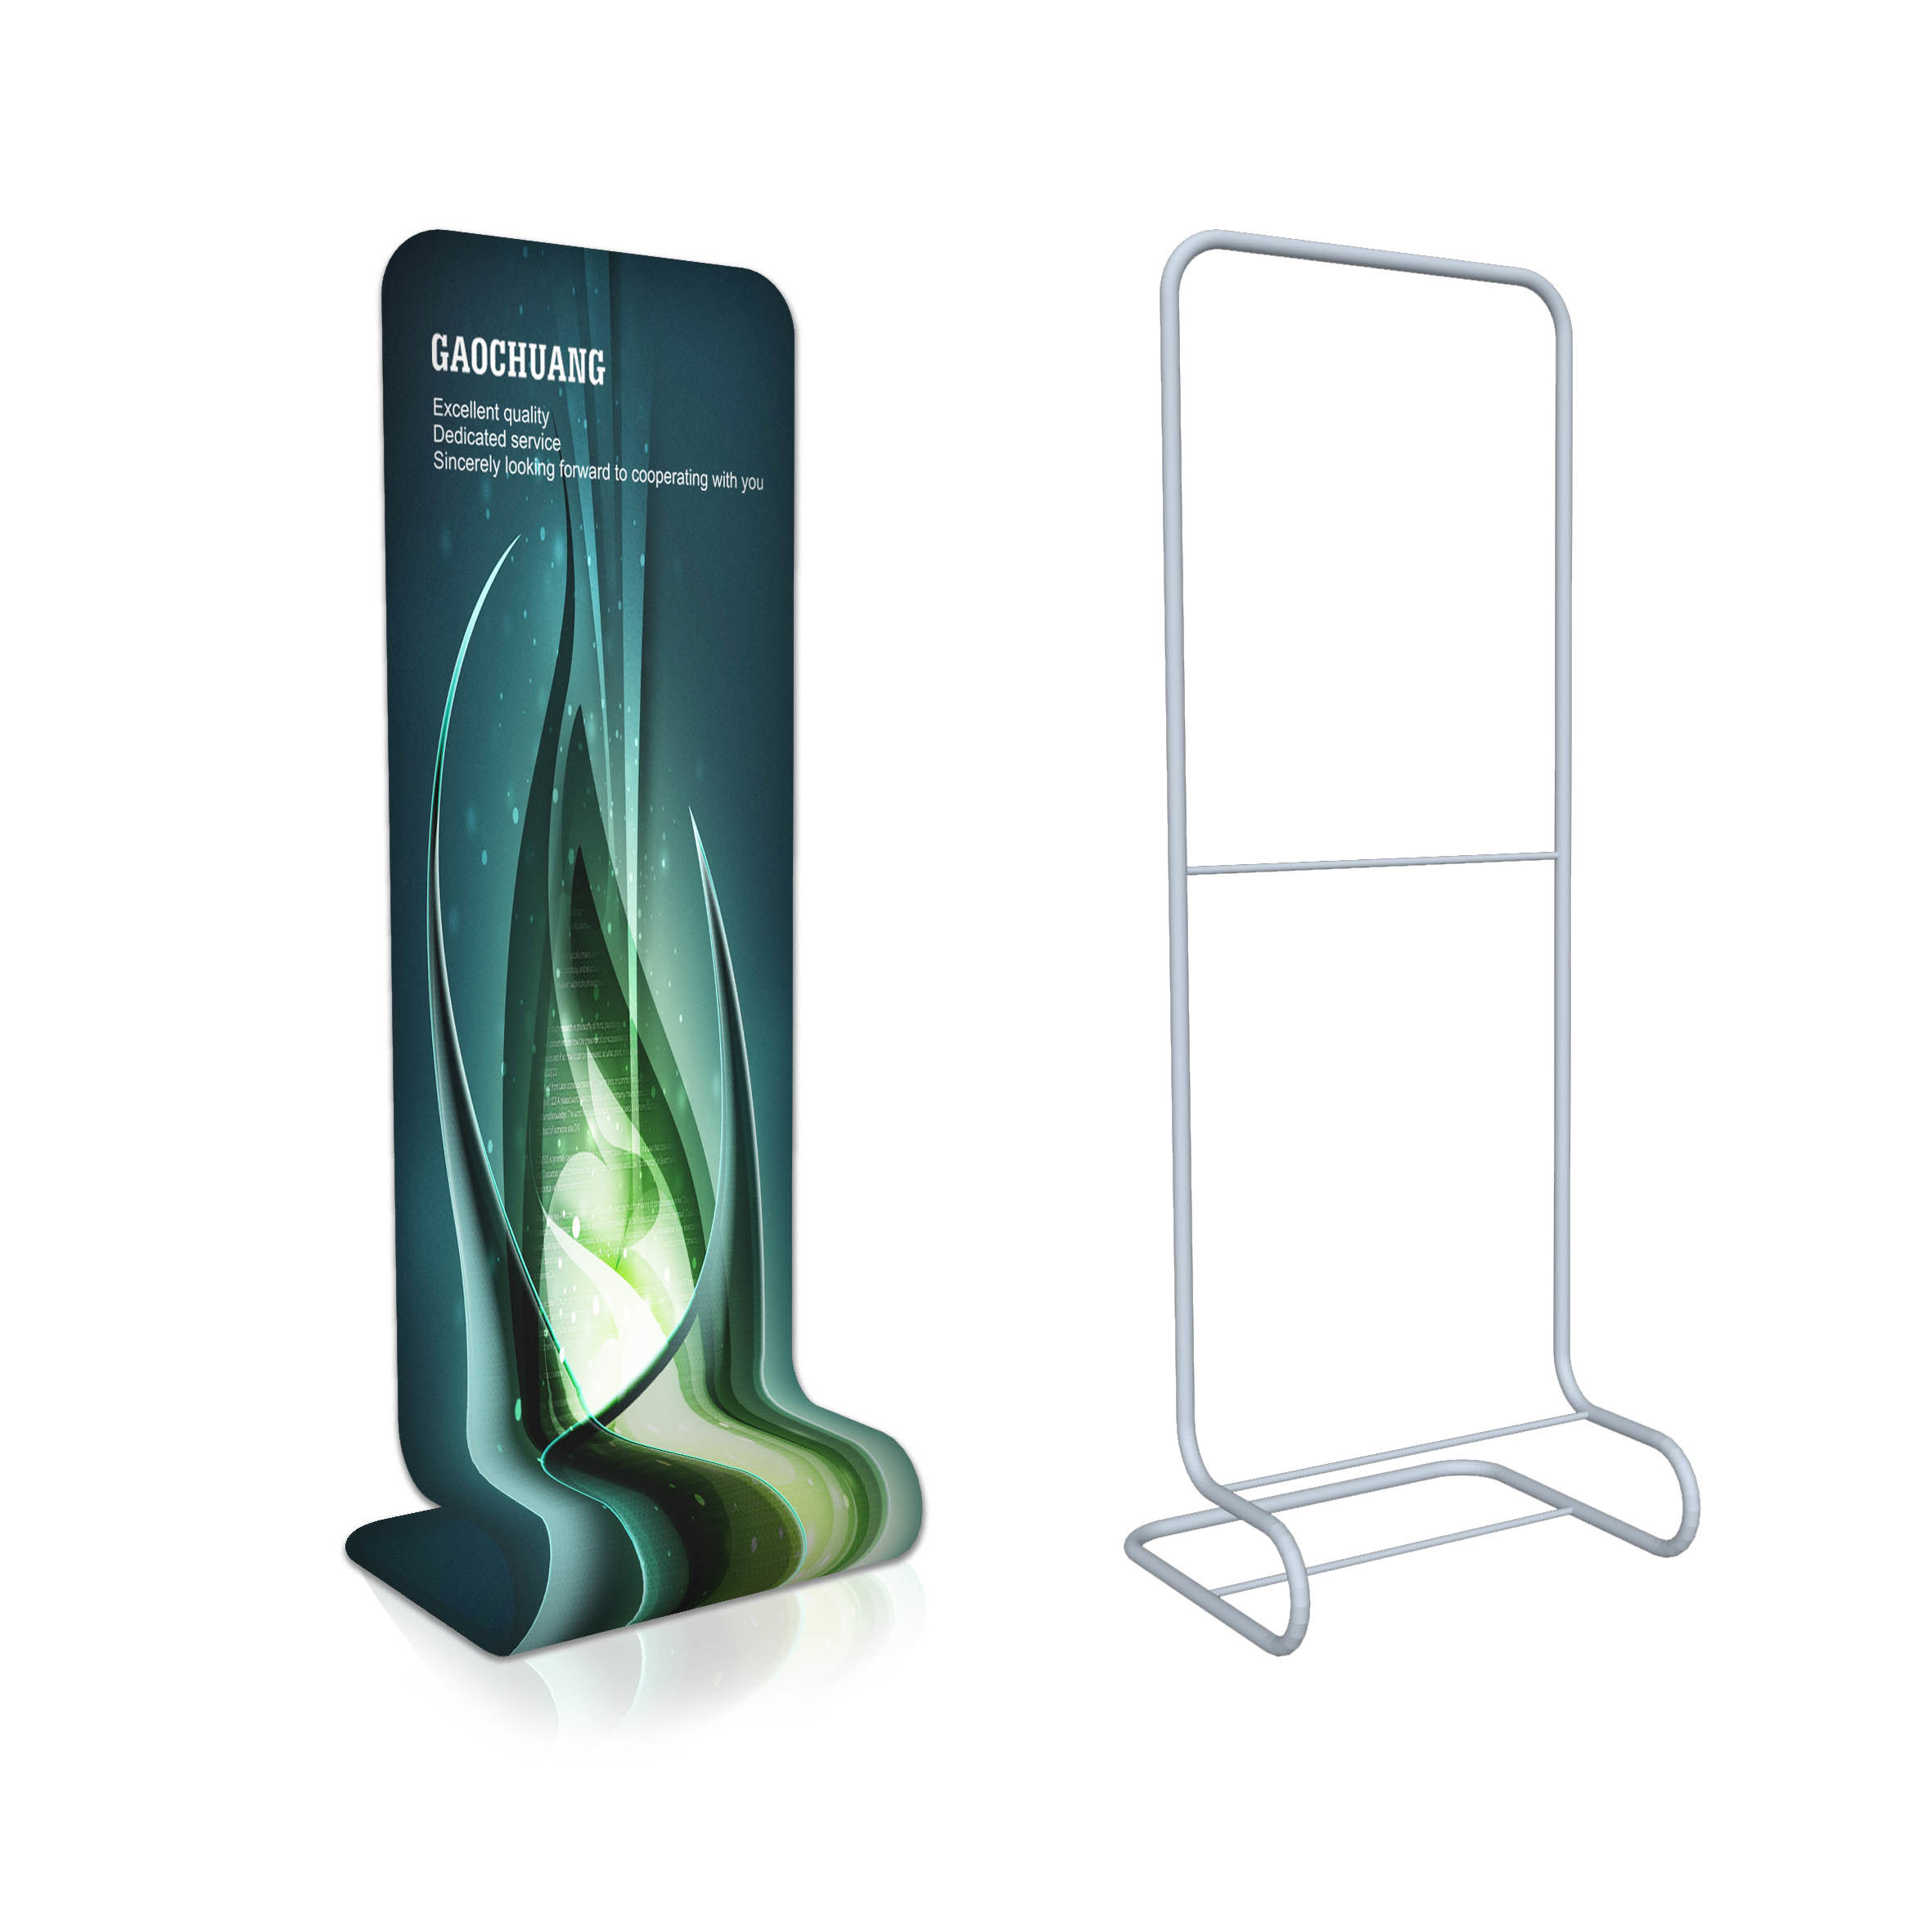 Exhibition Booth En Francais : China promotional snake shape fabric display banner stand